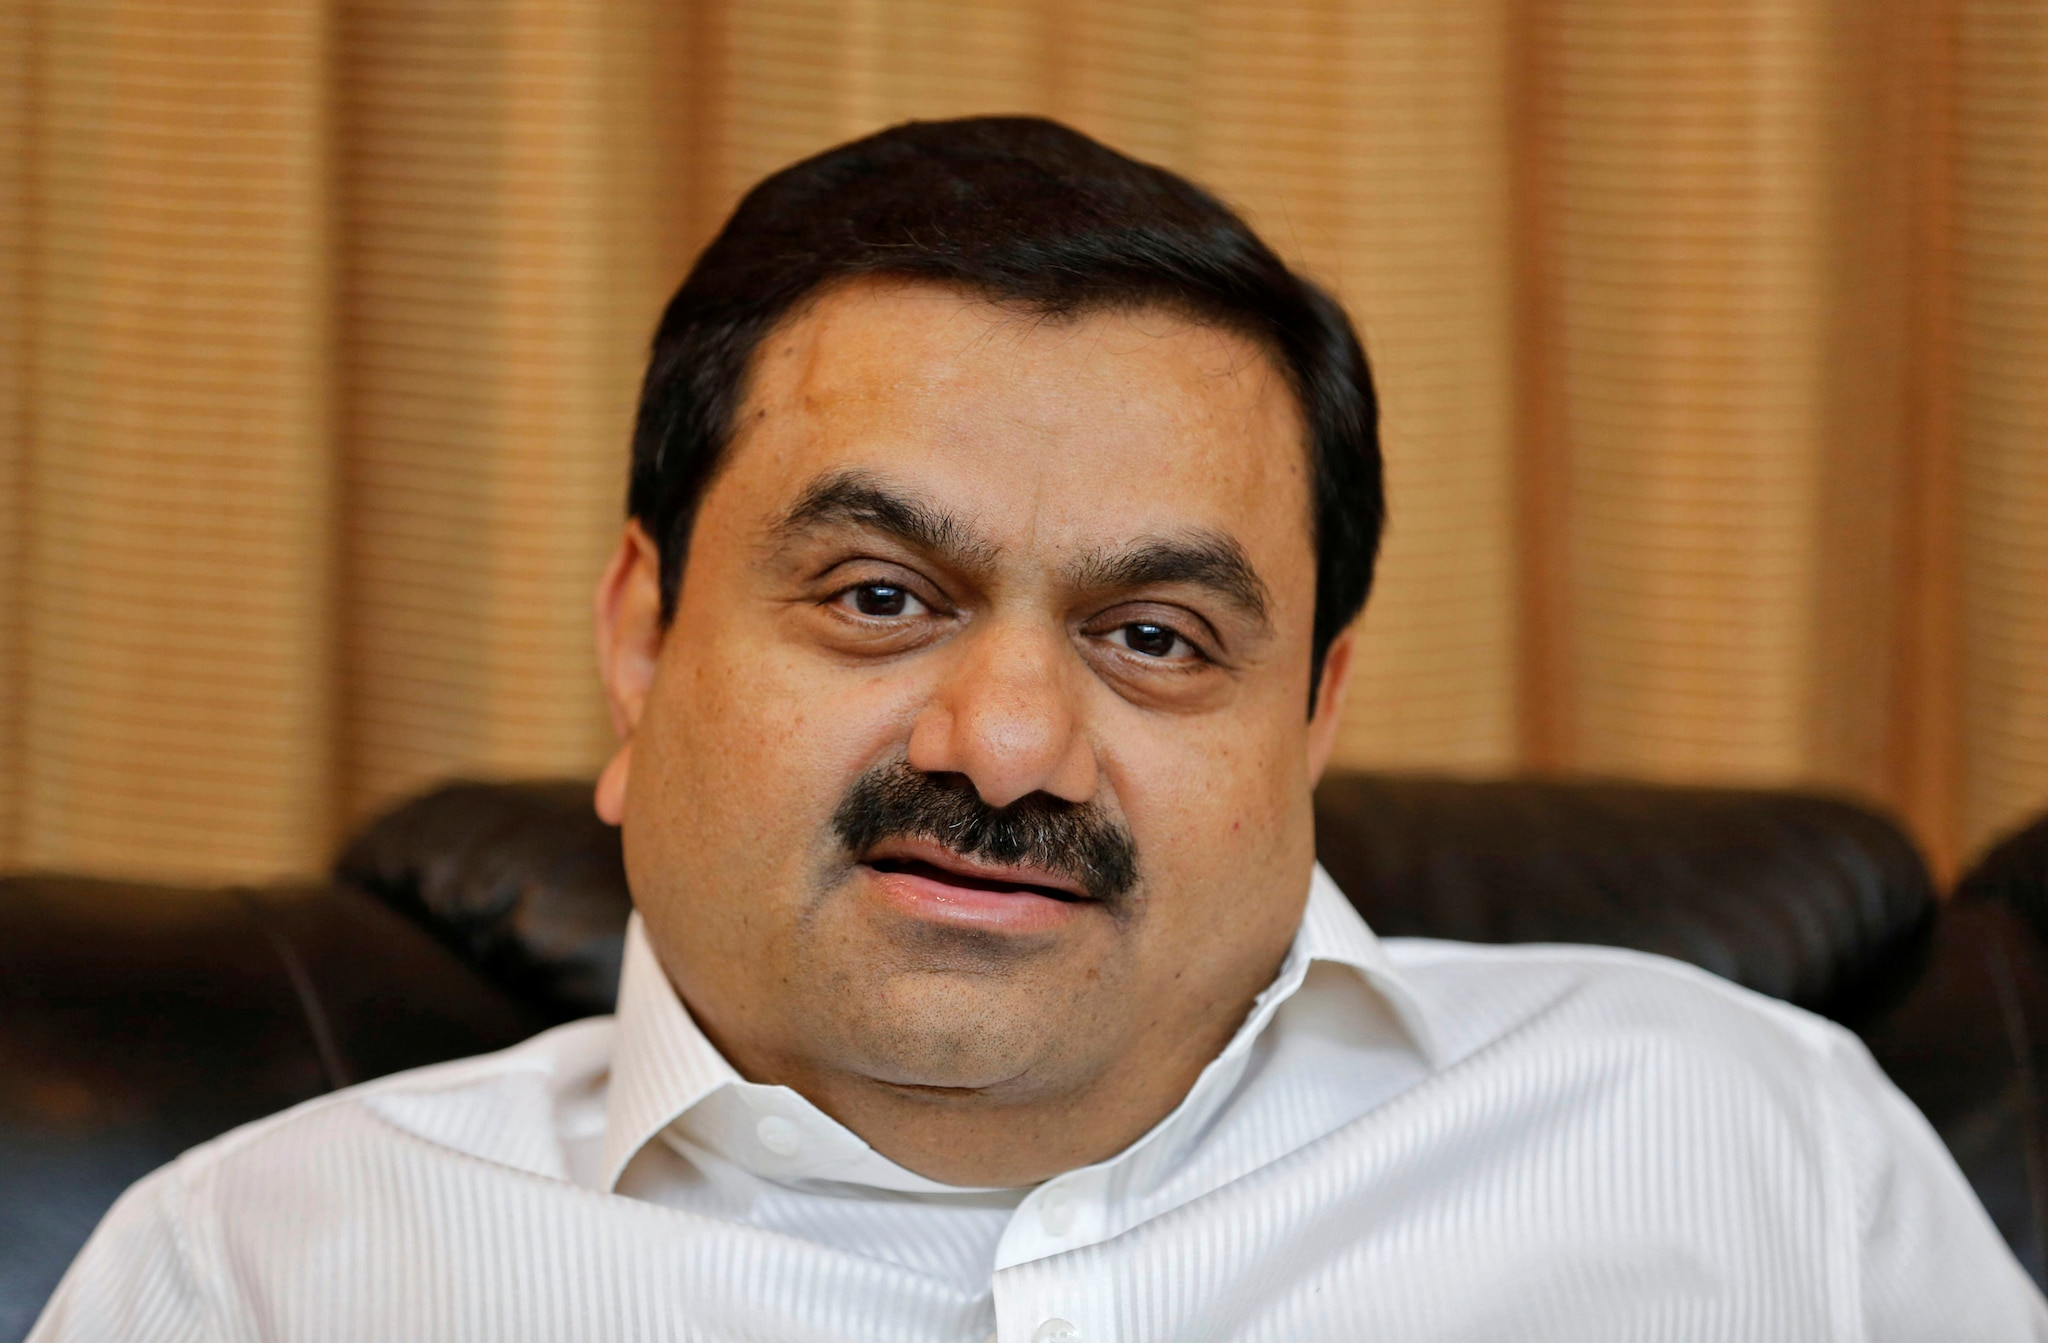 Gautam Adani & family: Net Worth: $11.9 billion.  Adani Group's interests include power generation and transmission, real estate and commodities. Adani's overseas assets include Australia's Abbott Point port and the controversial Carmichael coal mine, billed as one of the world's largest. Adani's son Karan runs listed firm Adani Ports & SEZ, now the family's biggest asset. Adani Group has partnered Swedish defence firm Saab to make Gripen fighter jets in India.